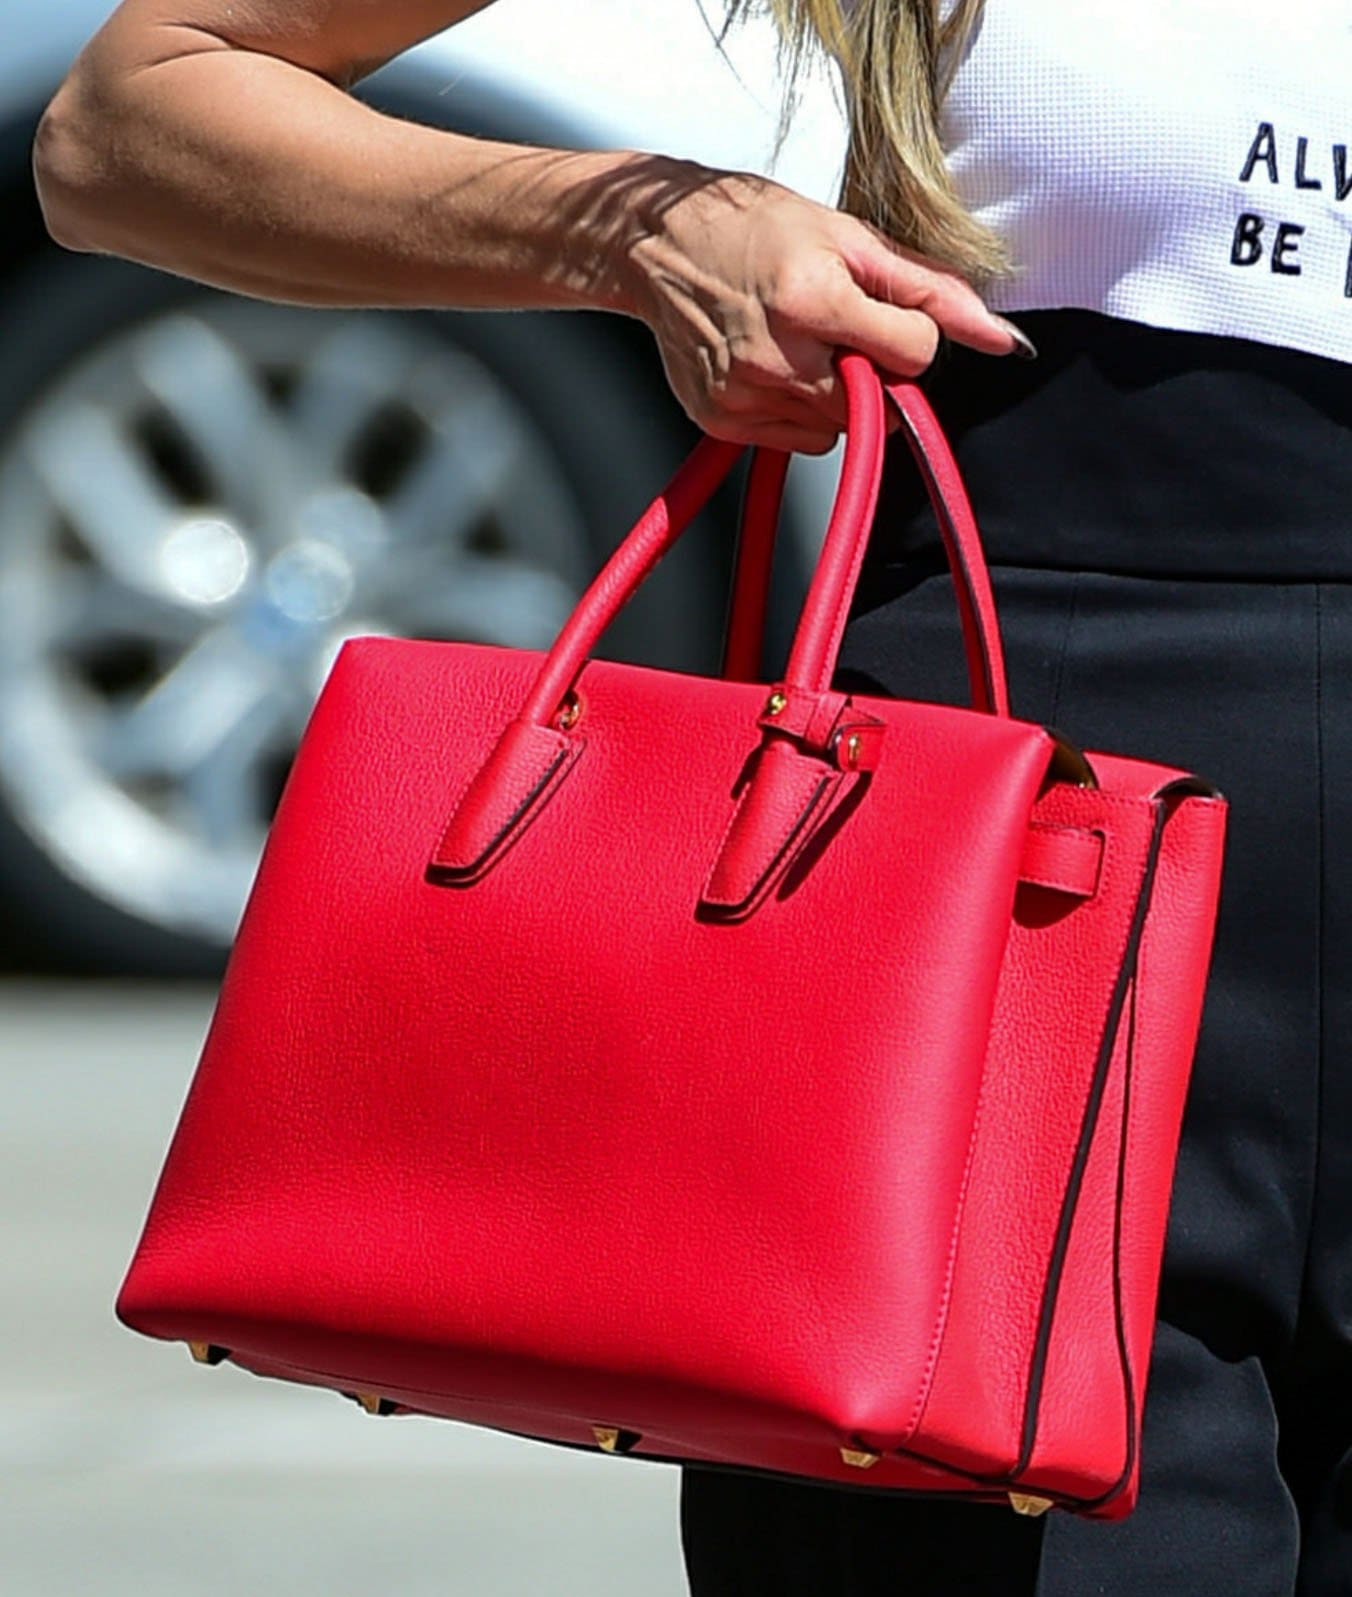 Heidi Klum adds color to her look with a ruby red MCM Milla tote bag